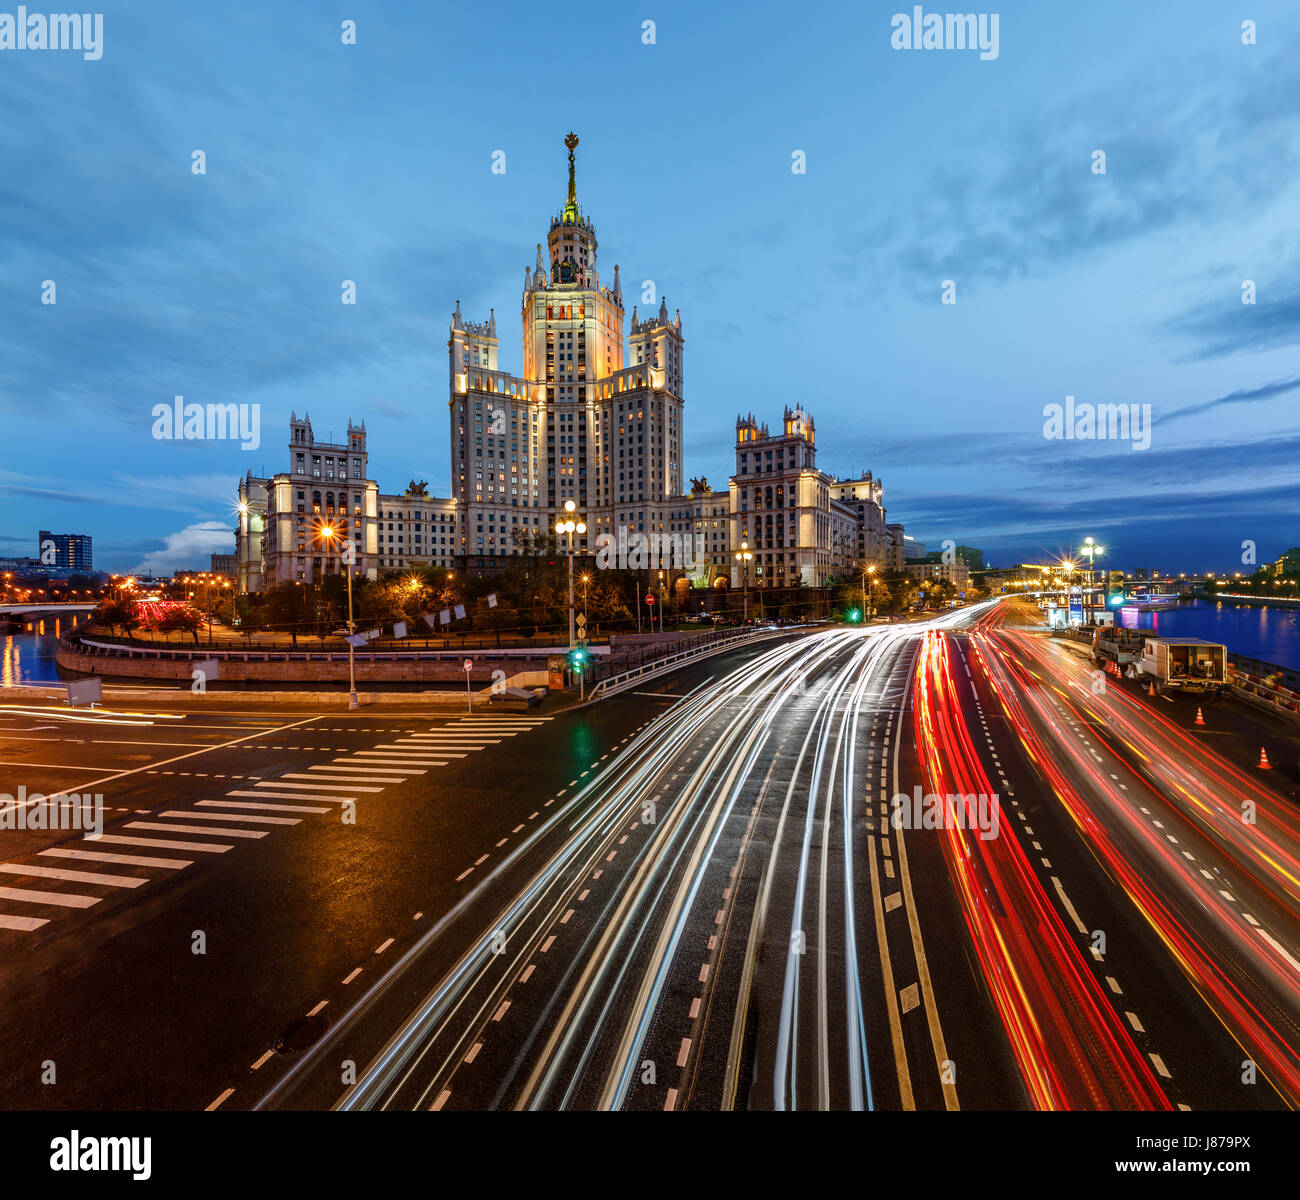 Stalin Skyscraper on Kotelnicheskaya Embankment of the Moscow River, Moscow, Russia Stock Photo